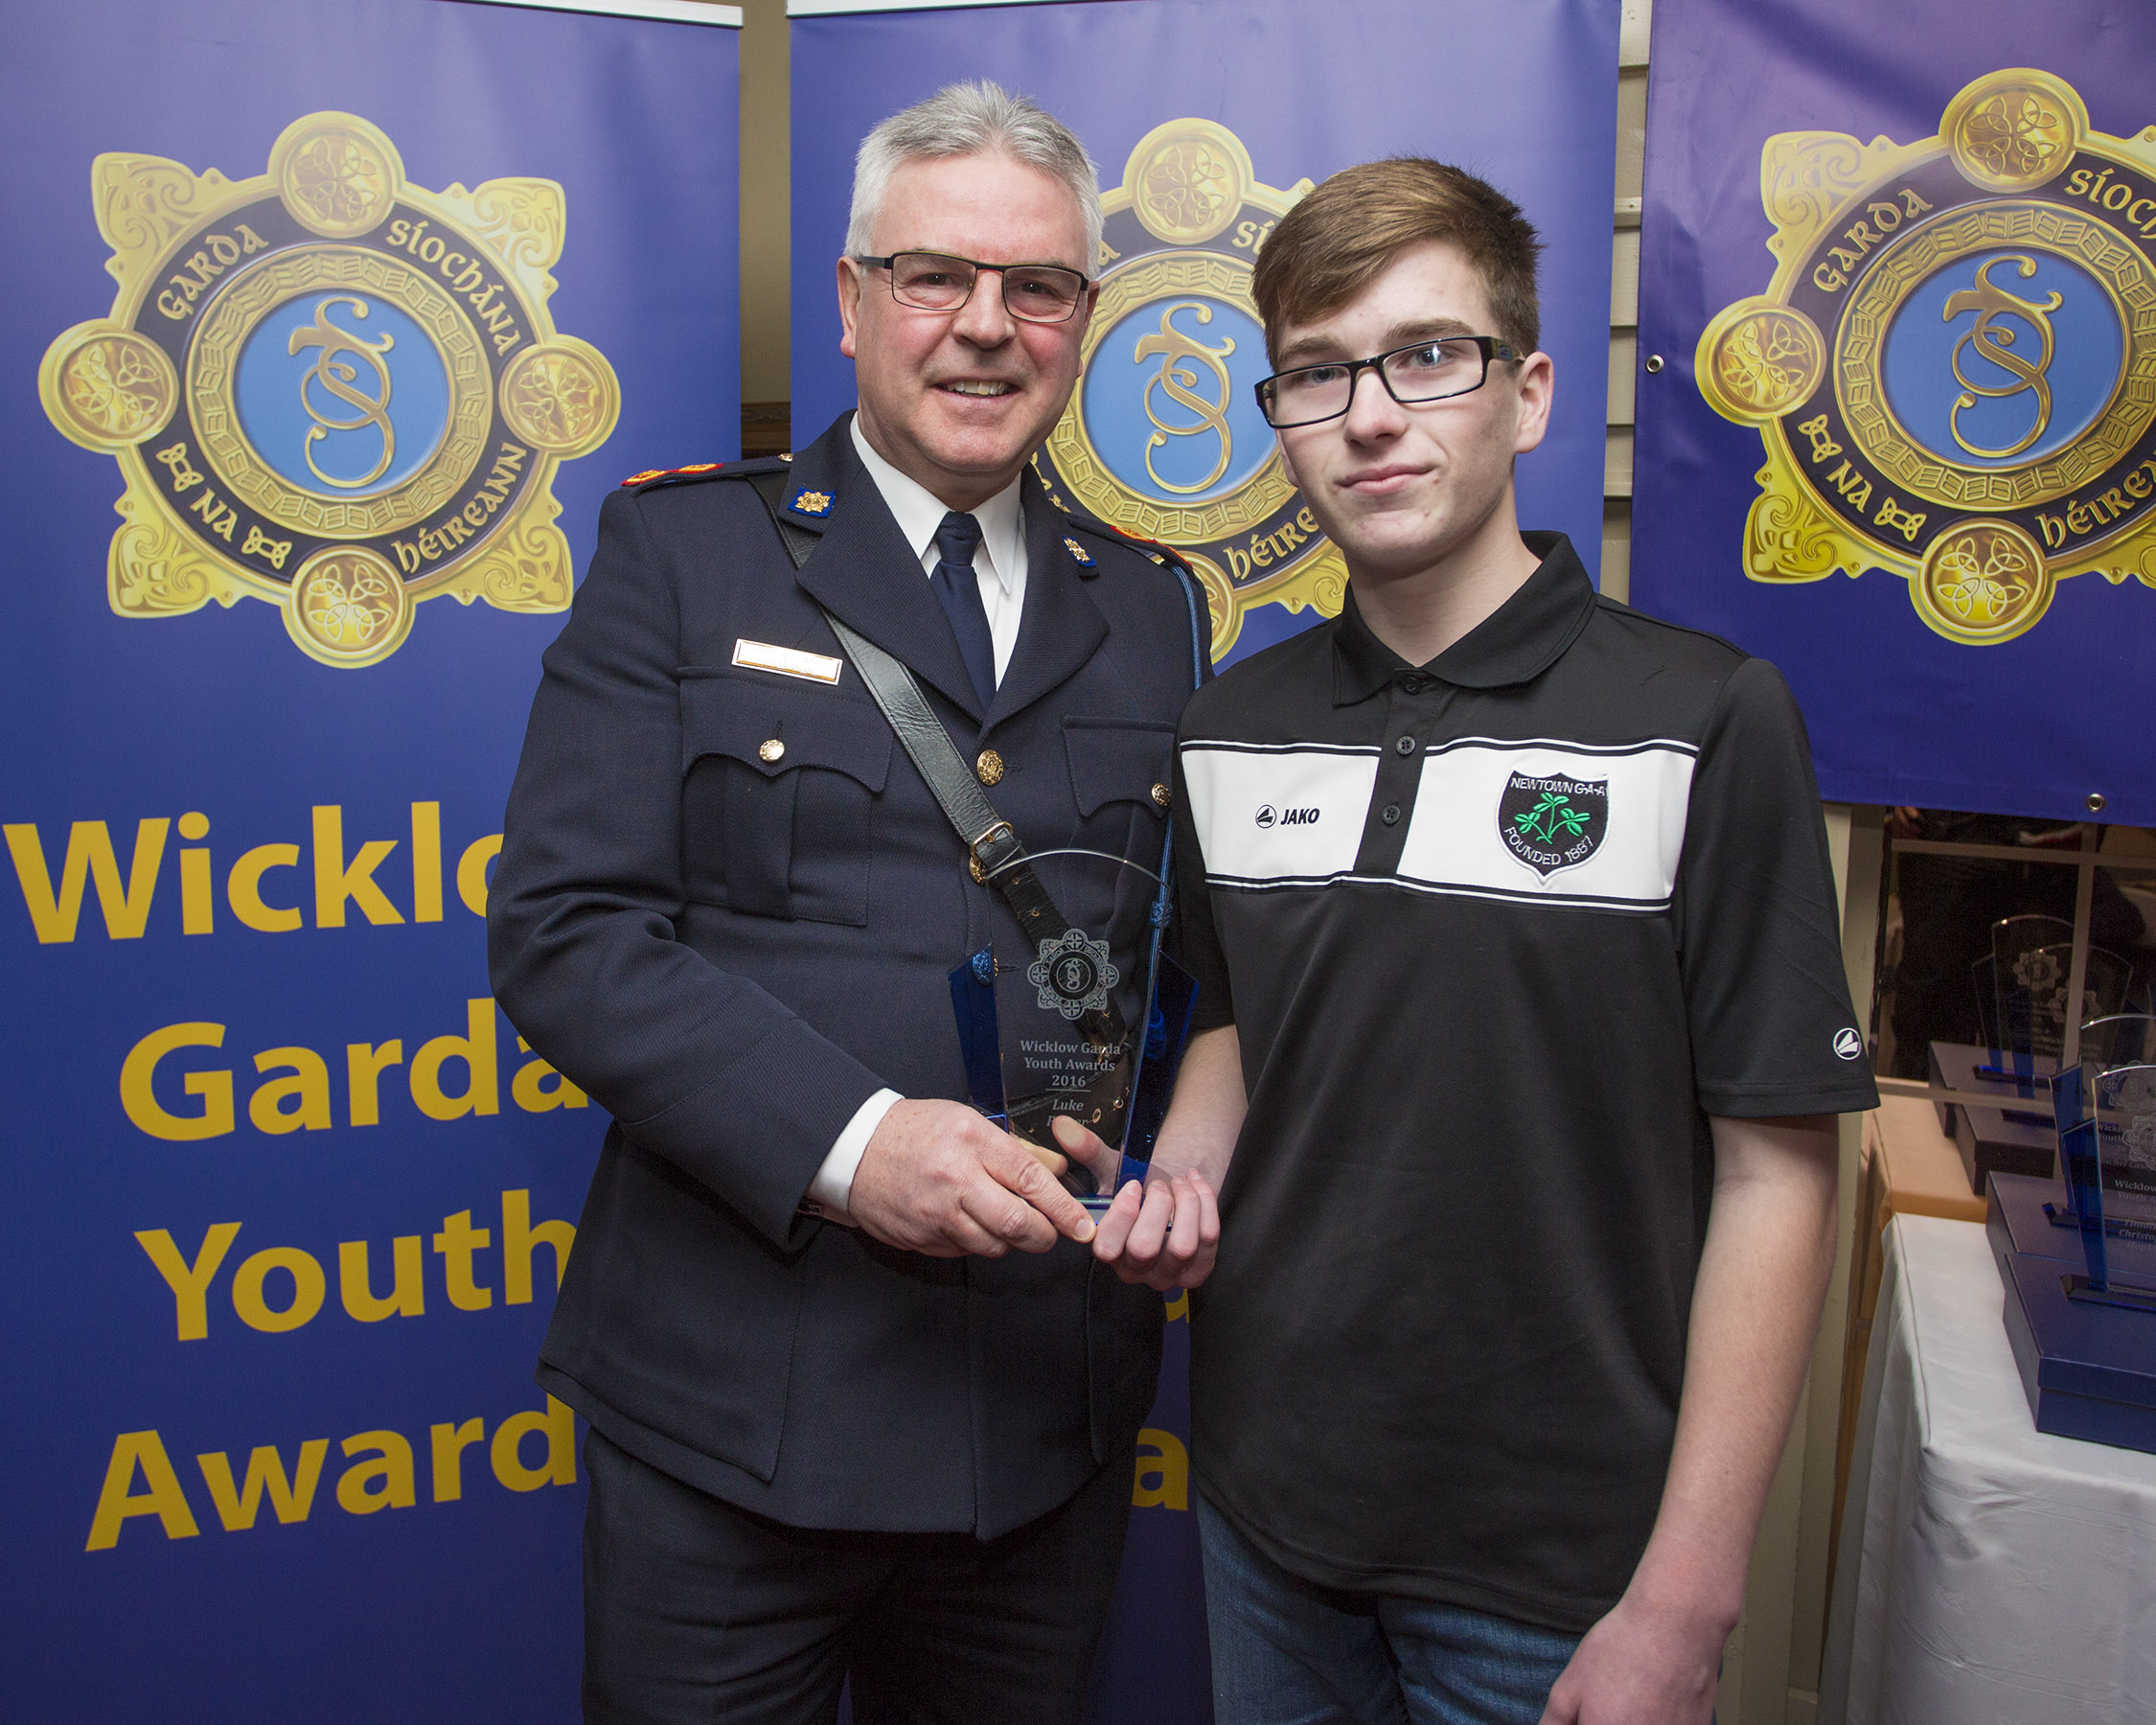 Luke Power from Newtown recieves his youth award from Superintendant Pat Ward at the 2nd Annual Wicklow Garda Youth Awards which was held in the Grand Hotel, Wicklow Town.